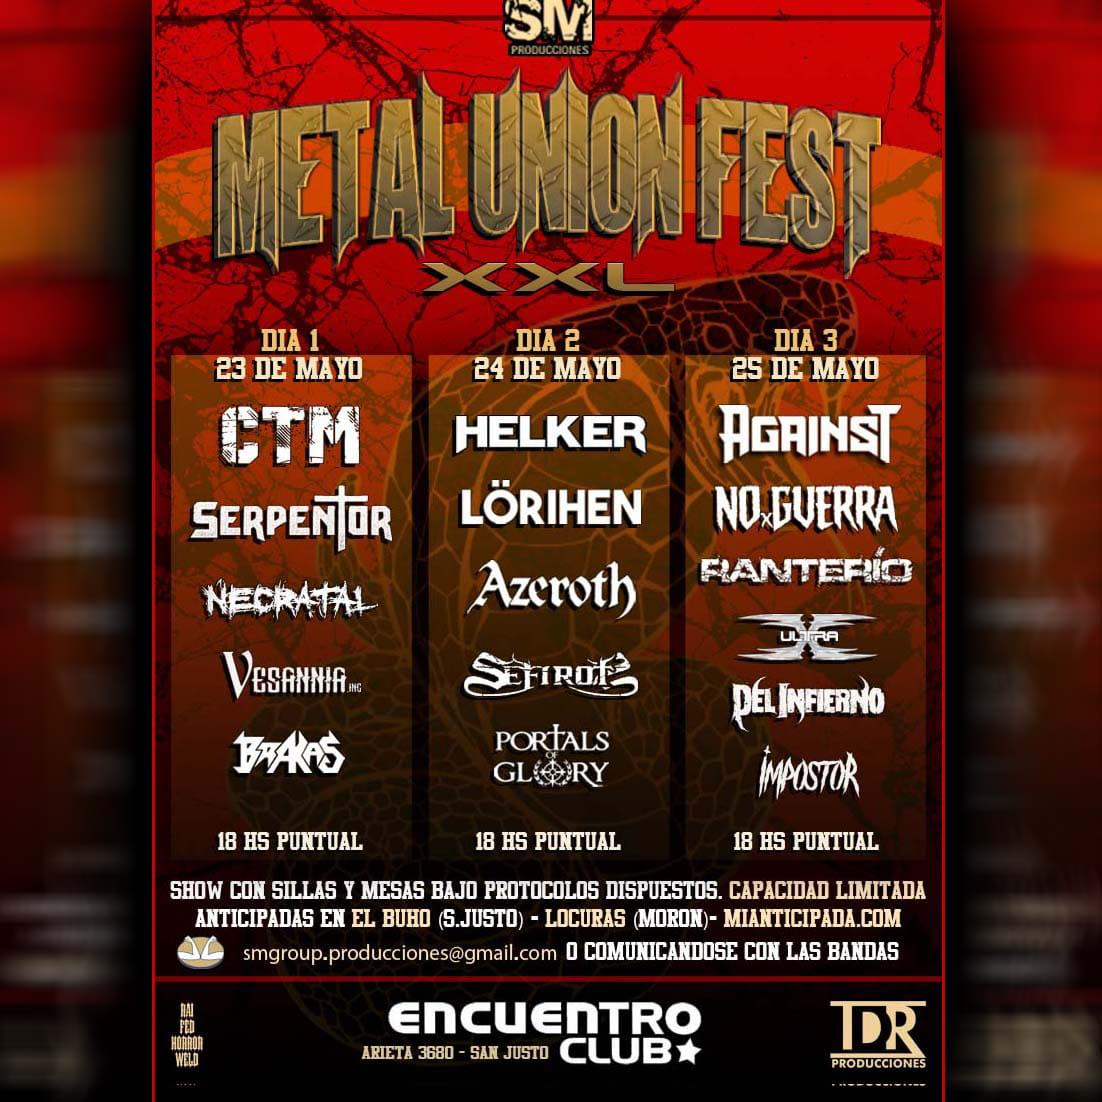 METAL UNION FEST en Encuentro Club